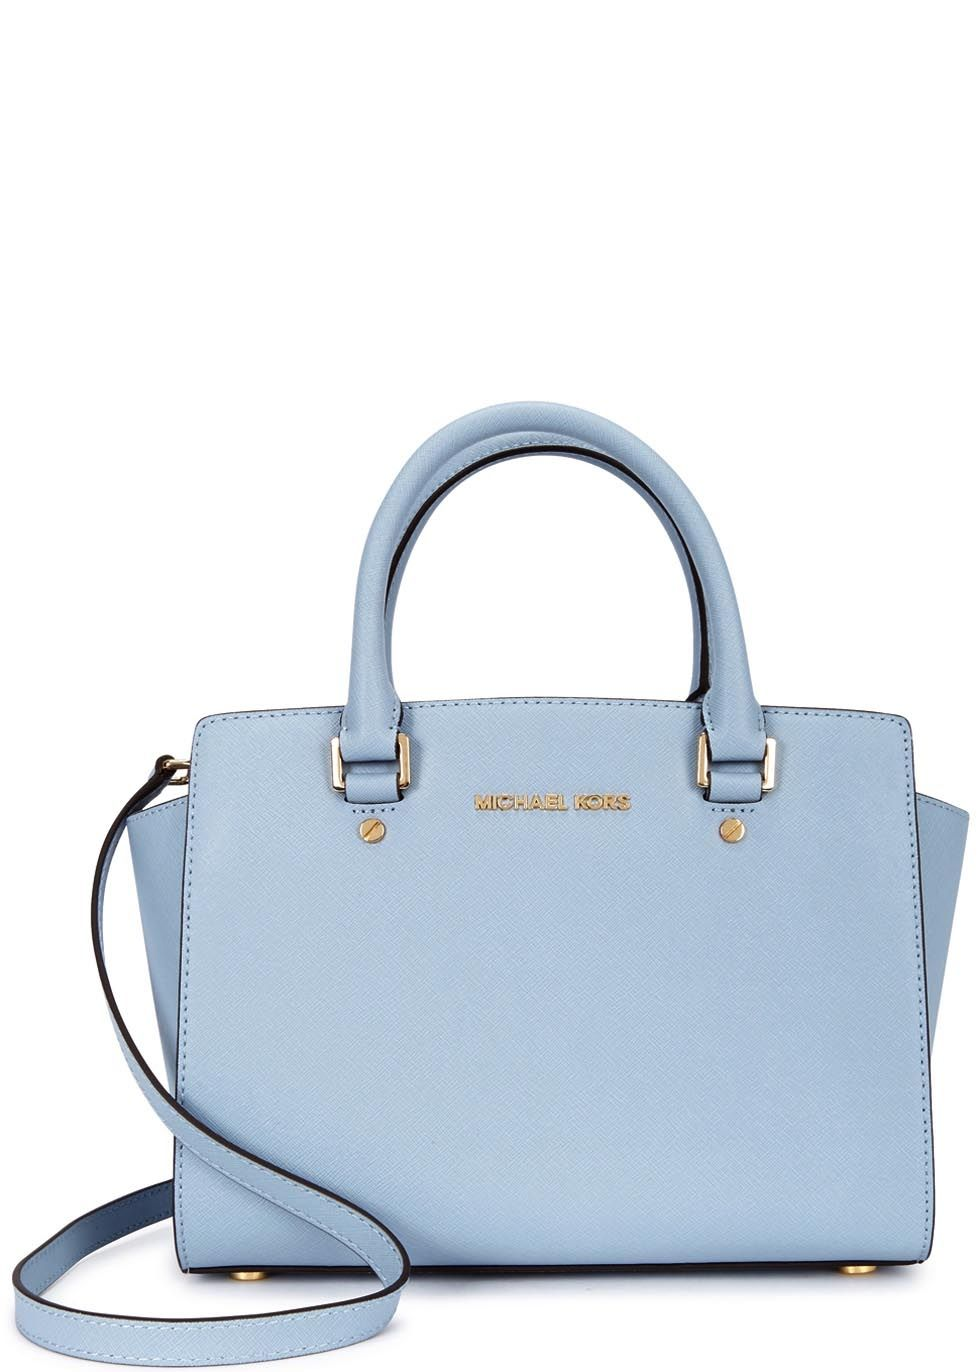 Michael Kors powder blue saffiano leather tote Two top handles ...